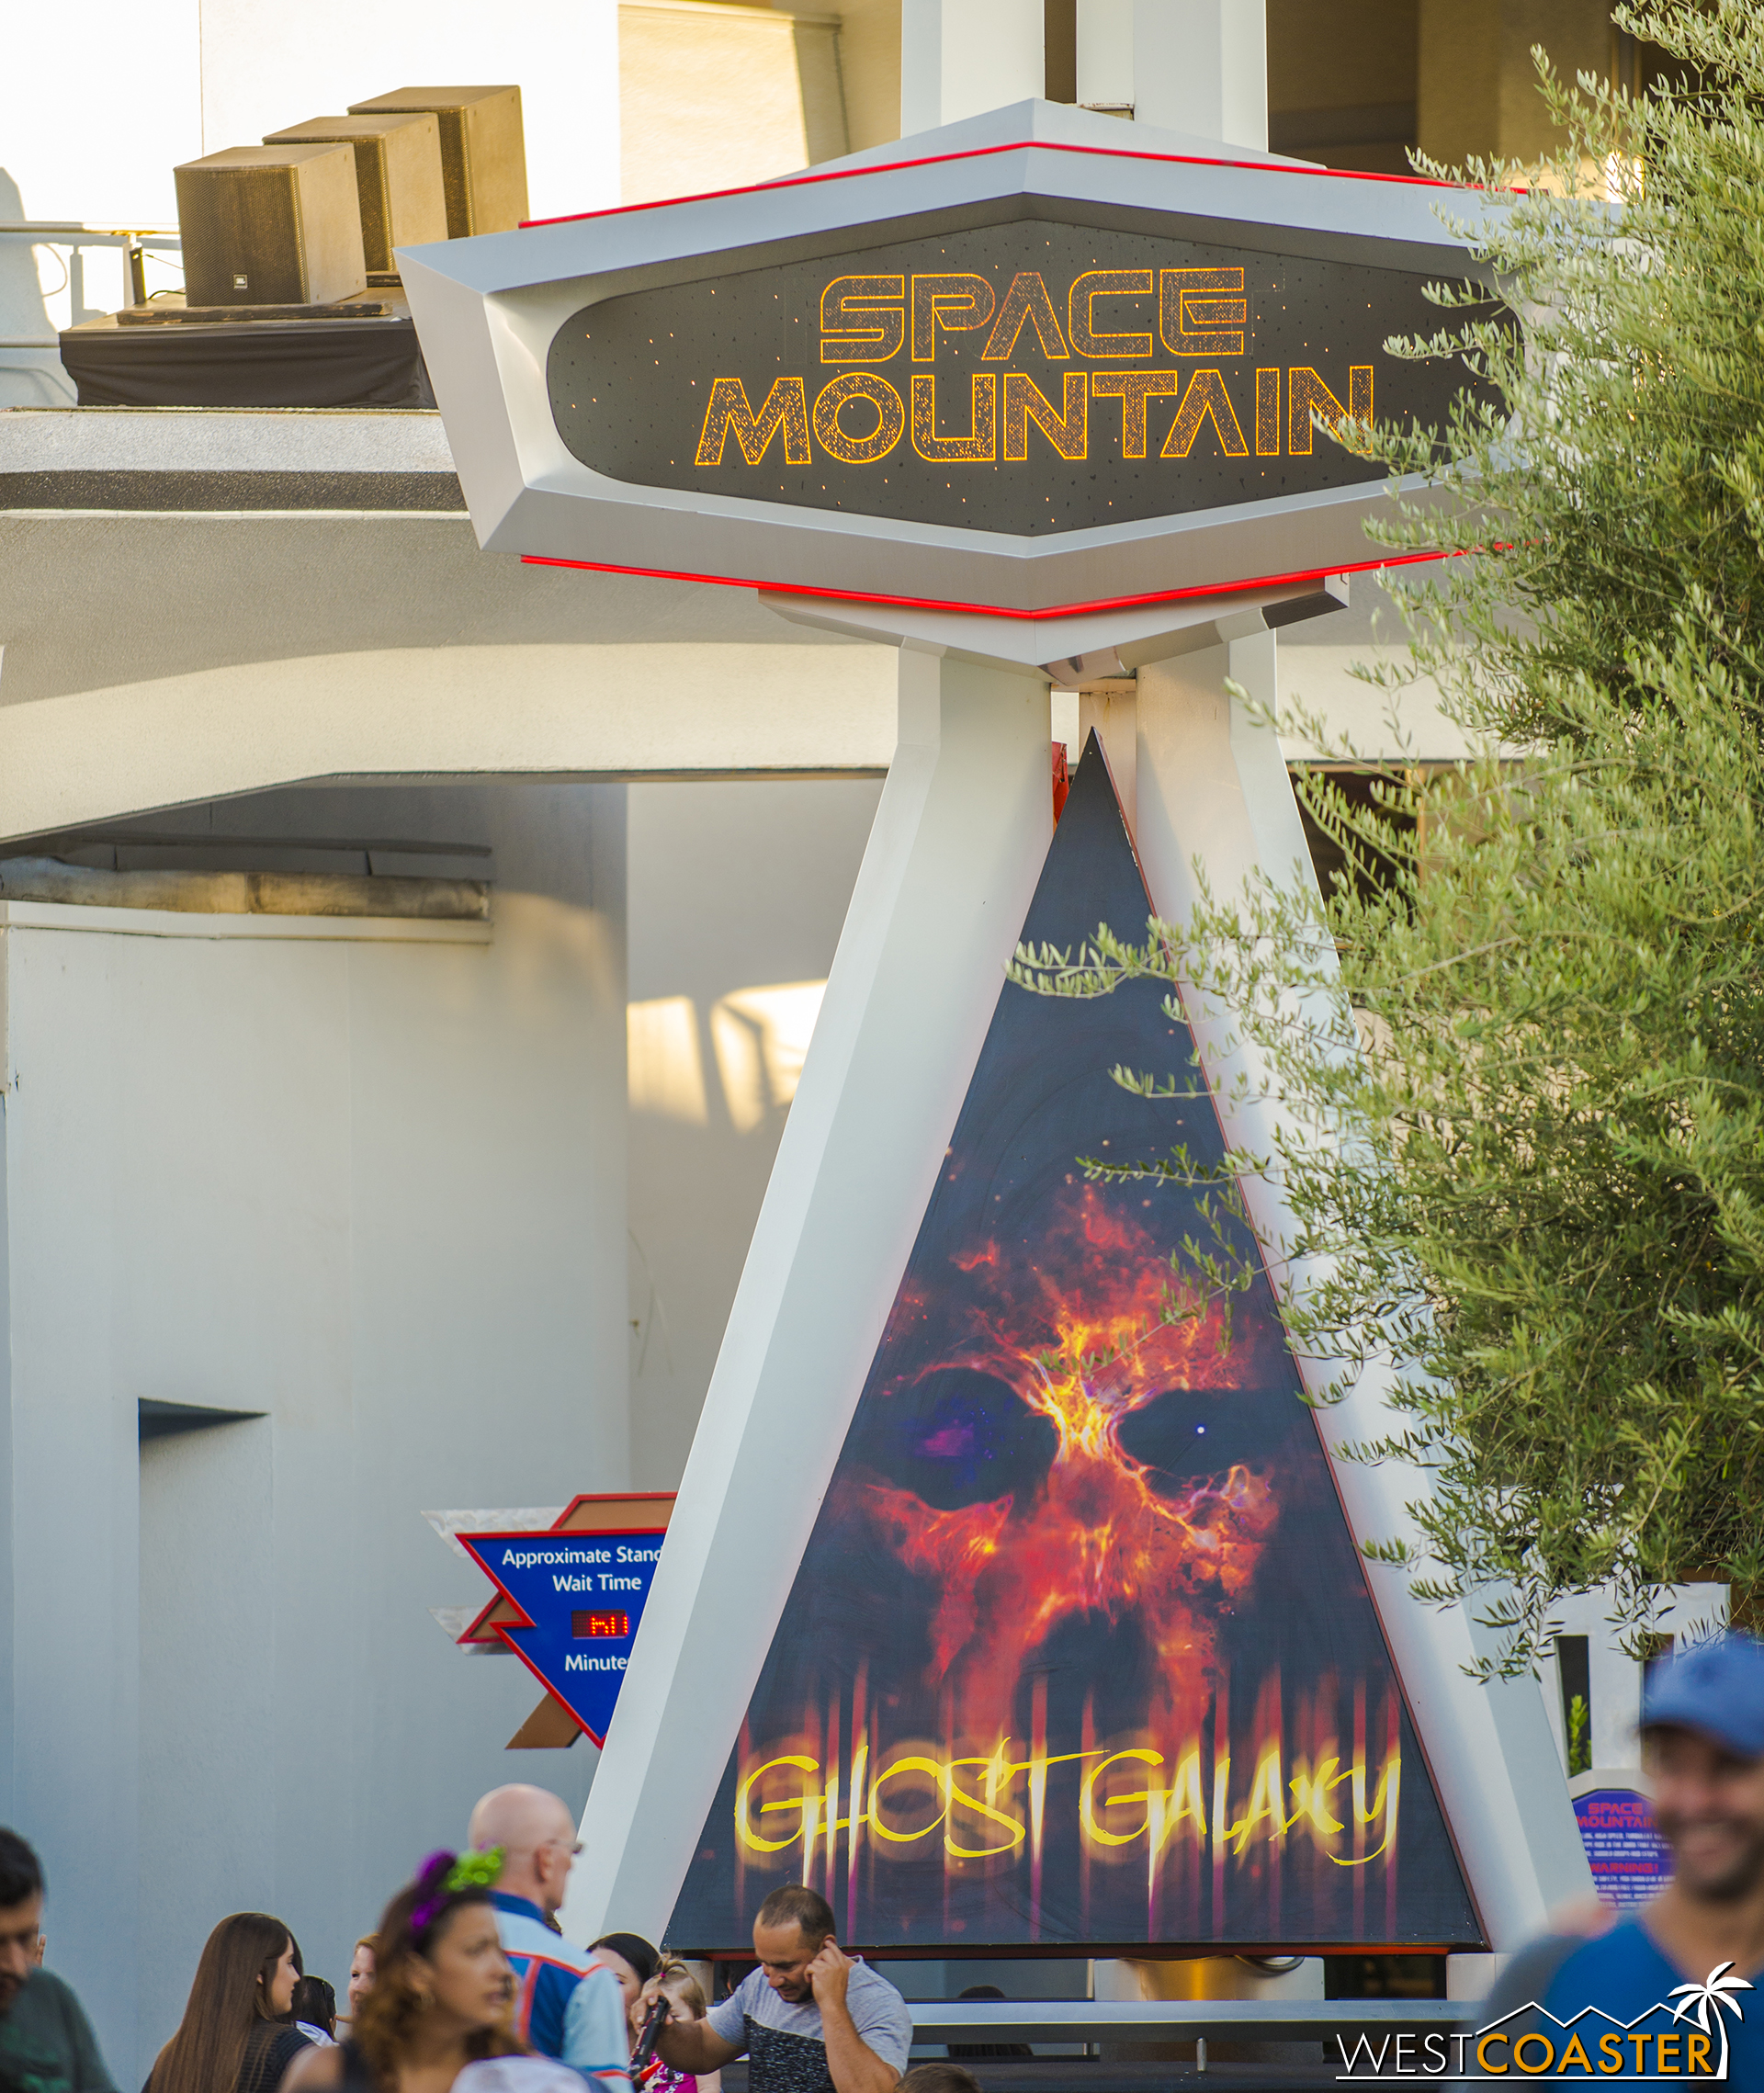 Just without Hyperspace Mountain, which has lost the Star Wars and gained an intergalactic spectre again.